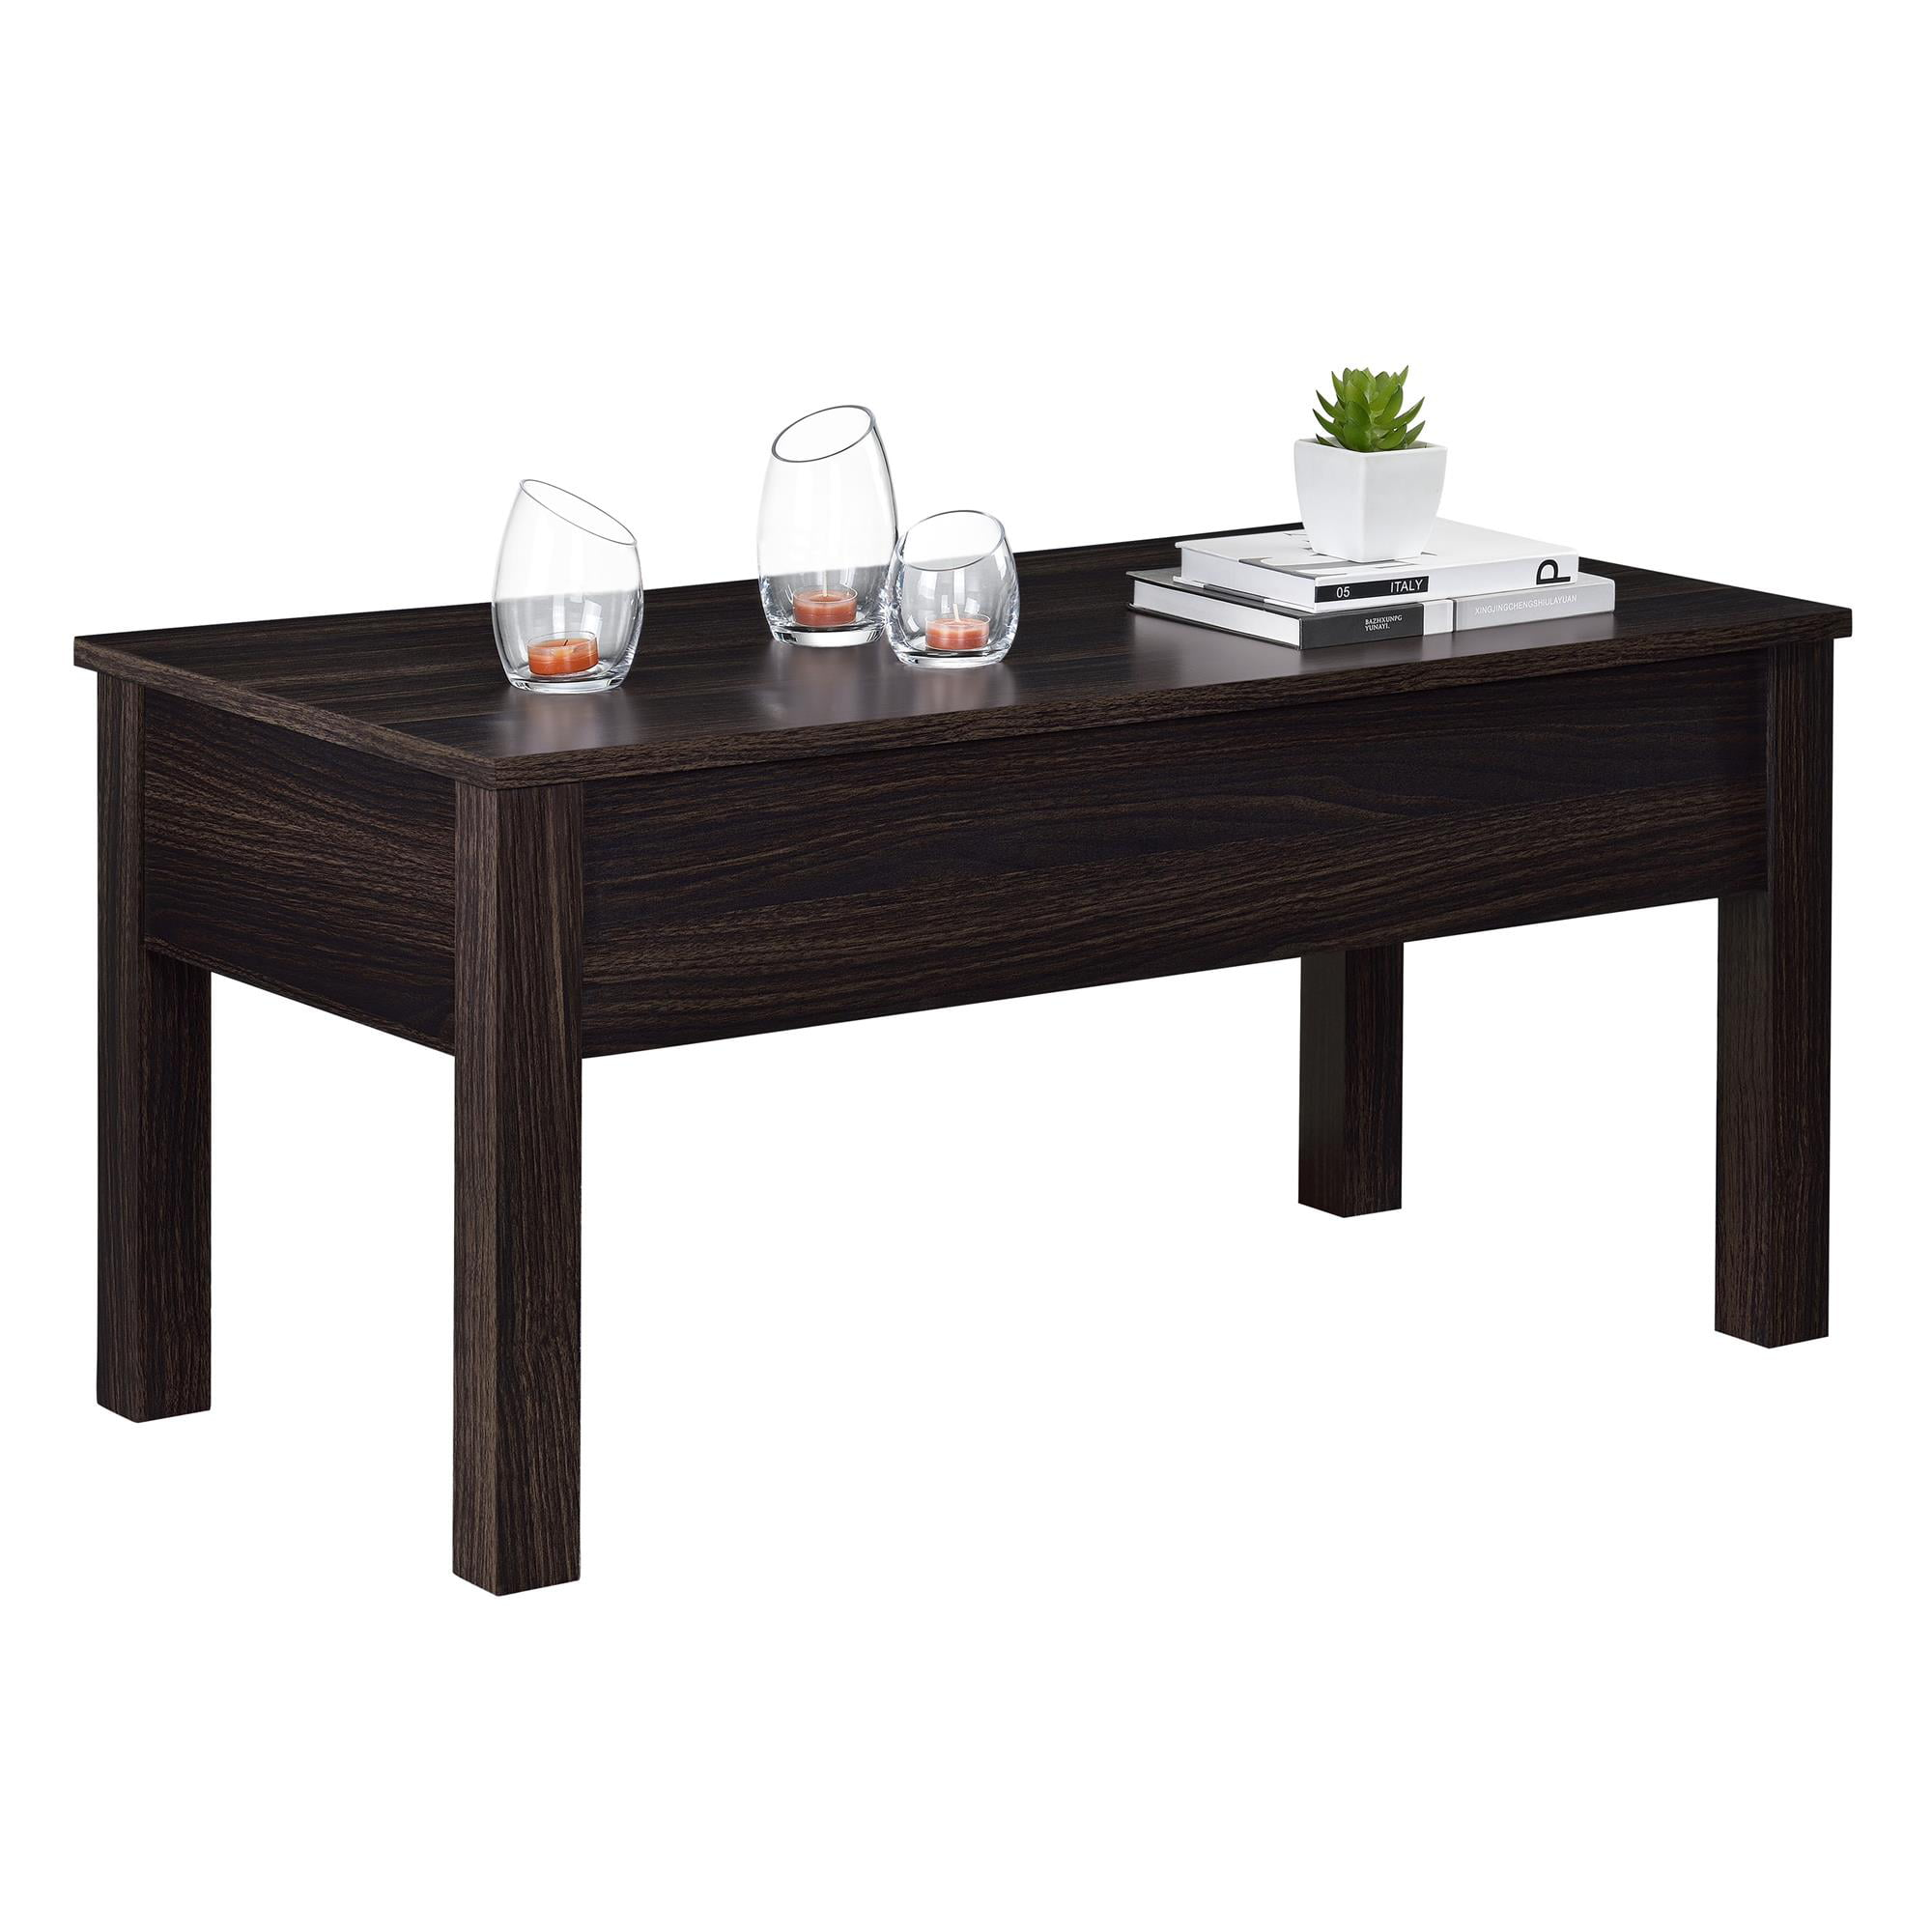 Mainstays Lift Top Coffee Table Multiple Colors Walmartcom